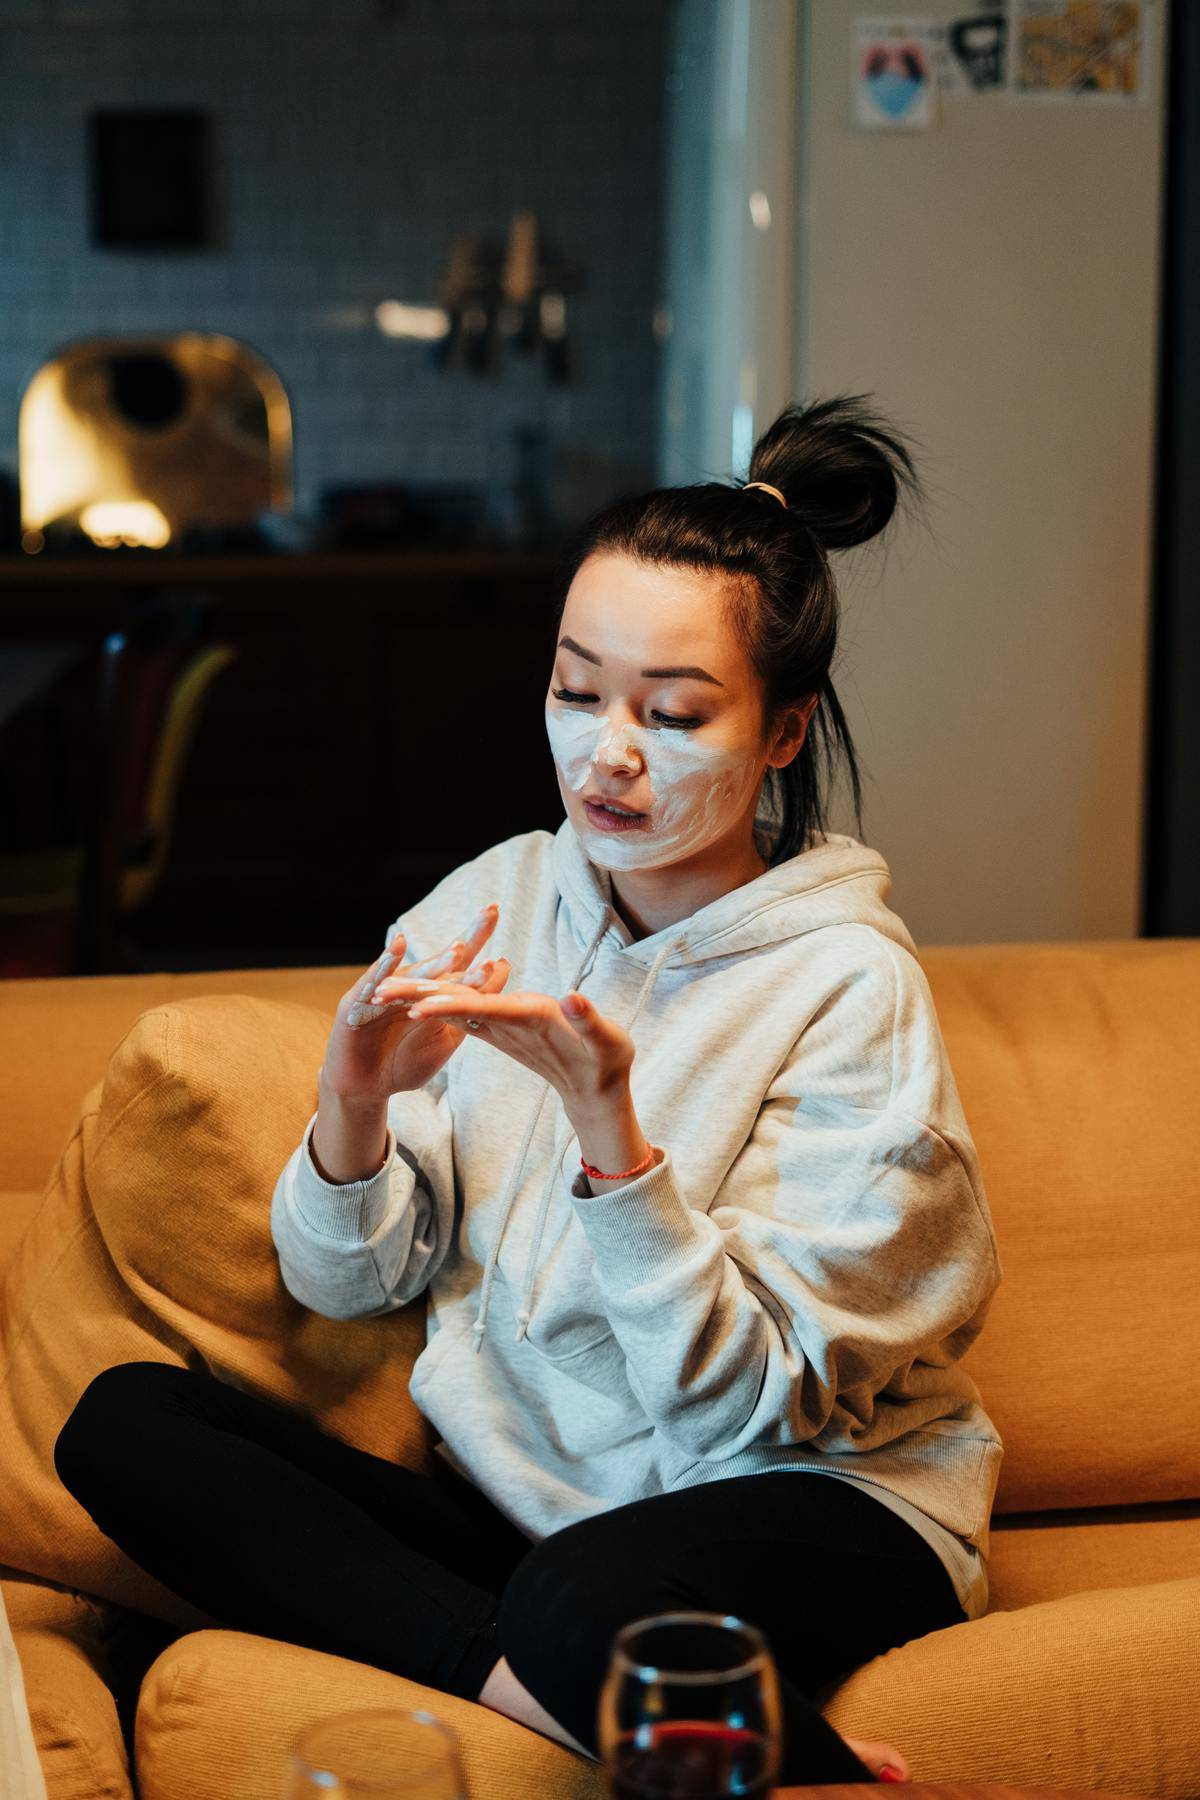 a woman putting on a face mask sitting on a couch with a glass of wine